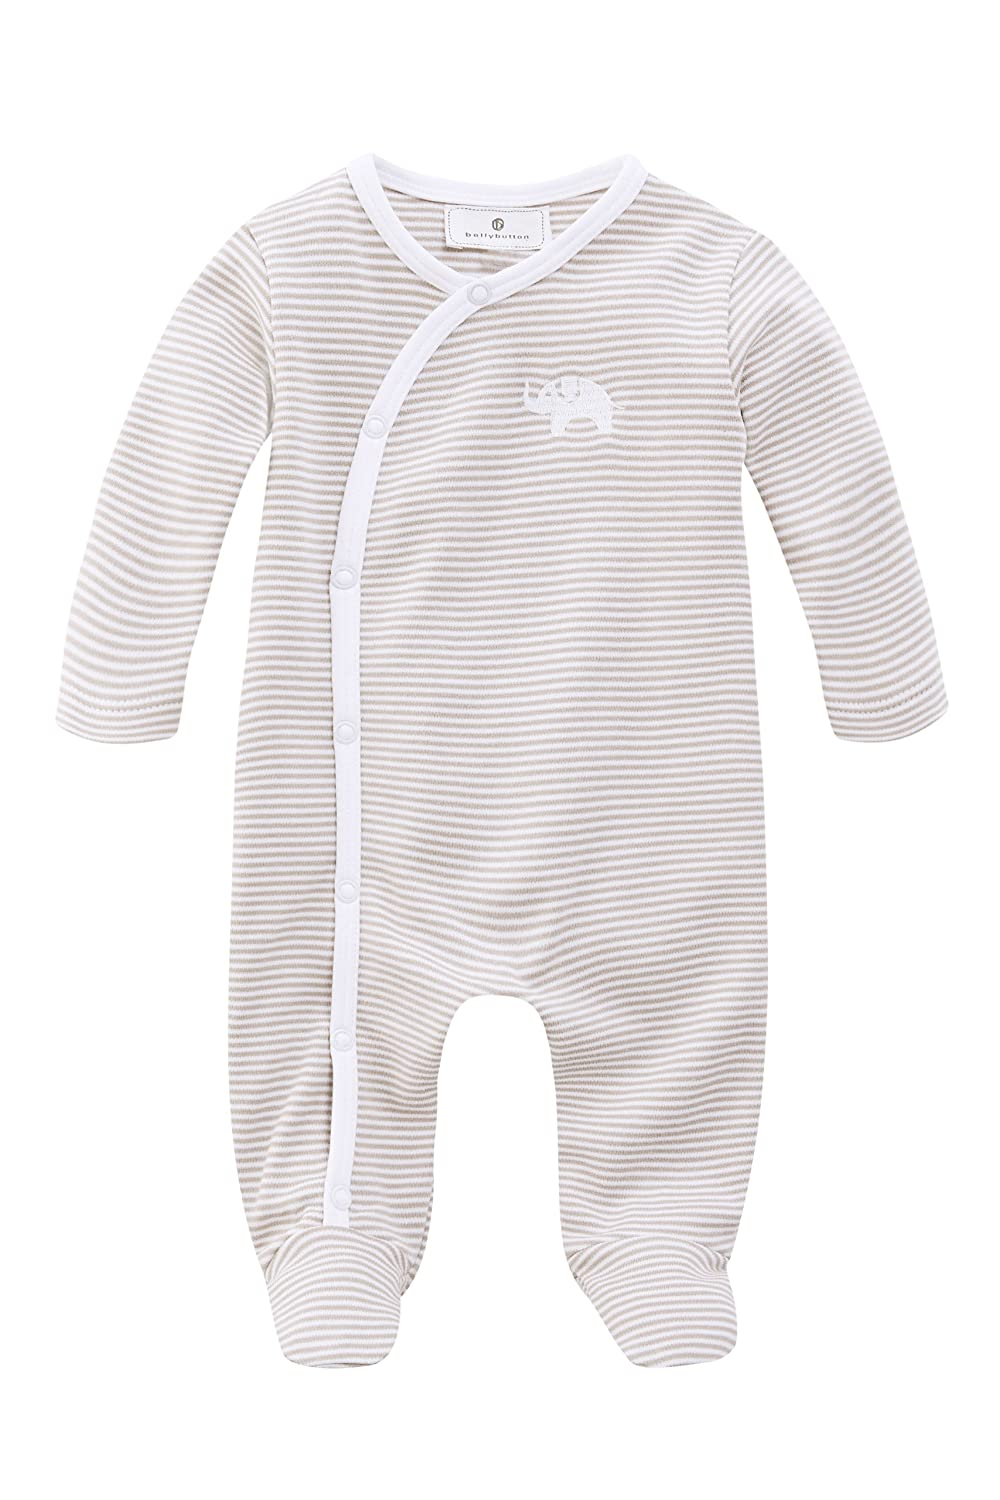 bellybutton Unisex Baby Romper Suit with Feet Romper 10892-90645-56_p